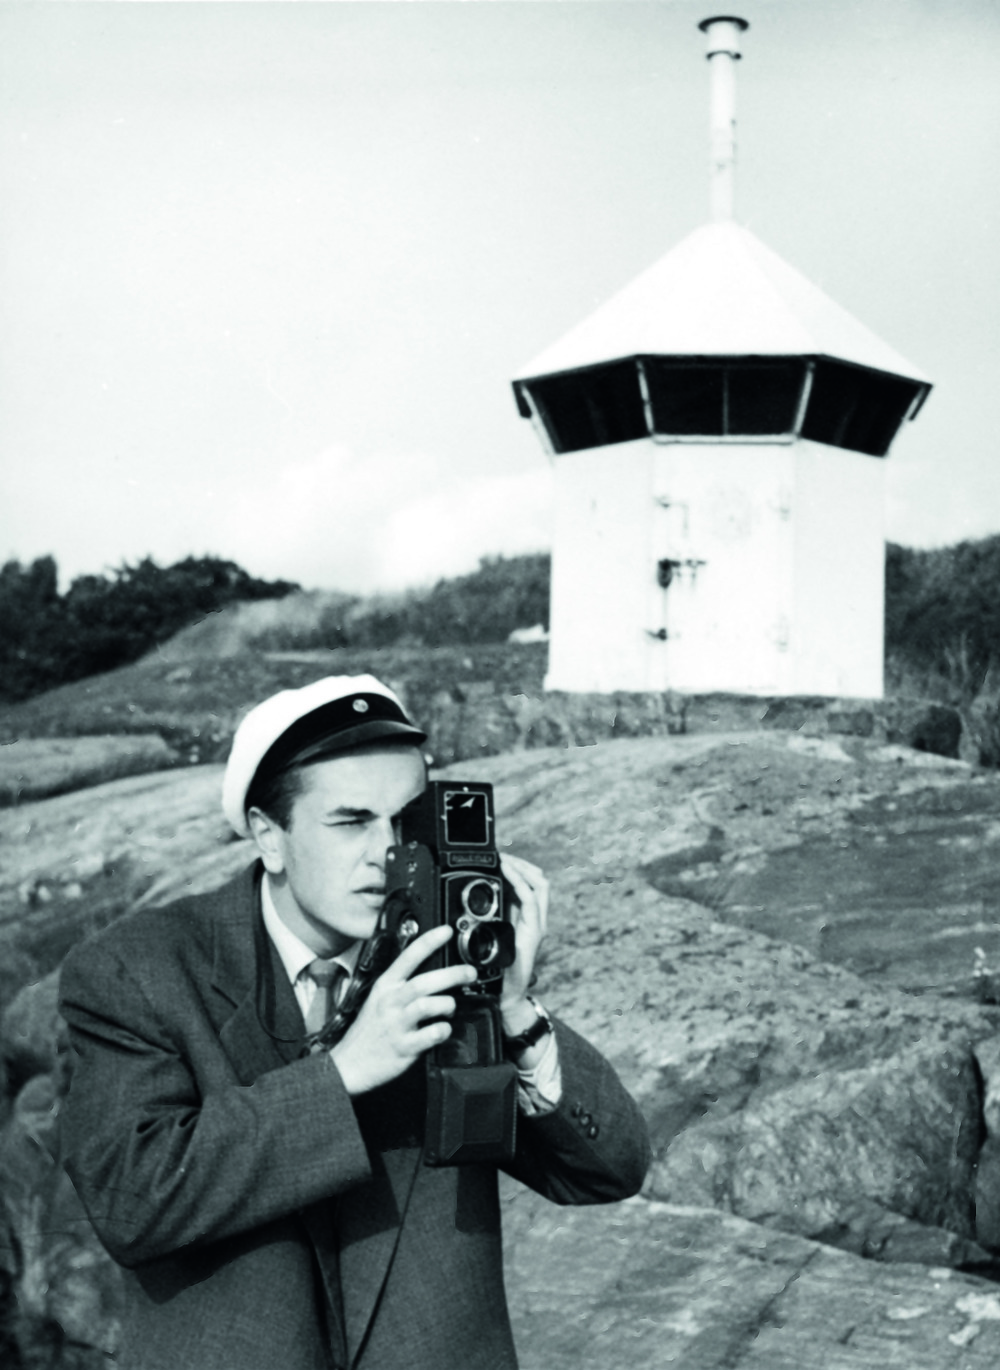 DM_Eero Aarnio filming in the end of 1950's. c_Eero Aarnio archive.jpg